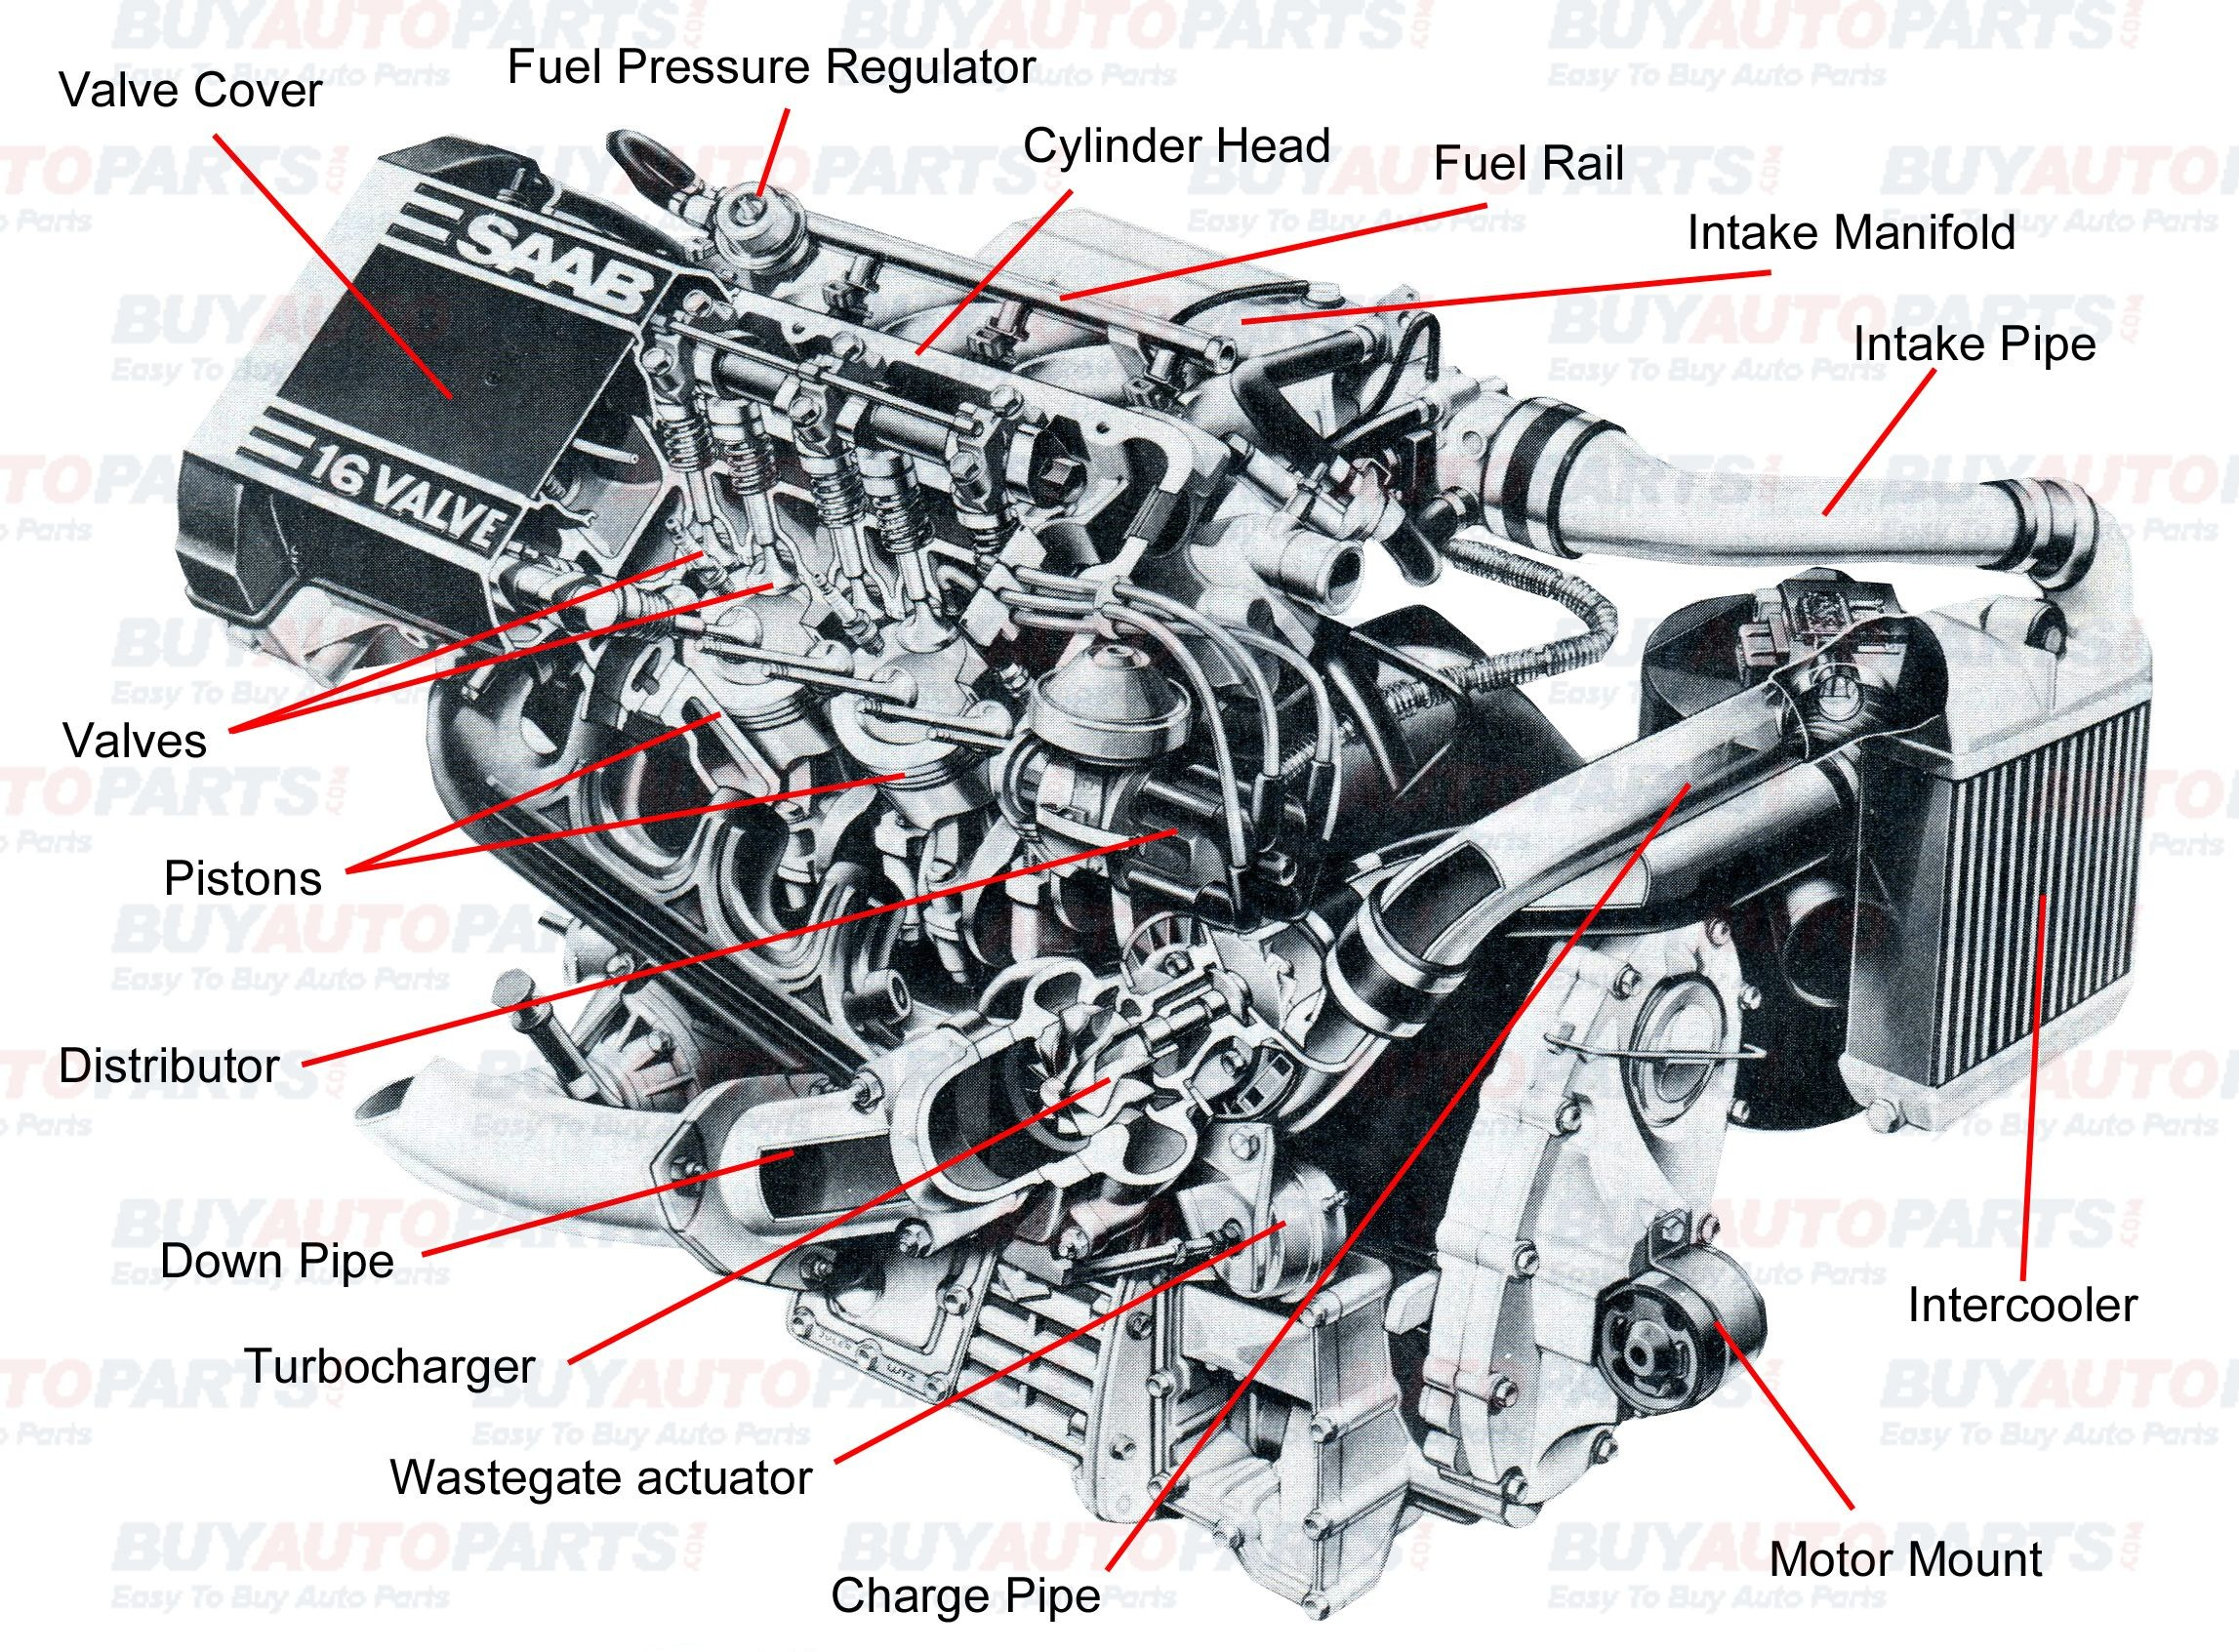 Diesel Engine Components Diagram All Internal Bustion Engines Have the Same Basic Ponents the Of Diesel Engine Components Diagram